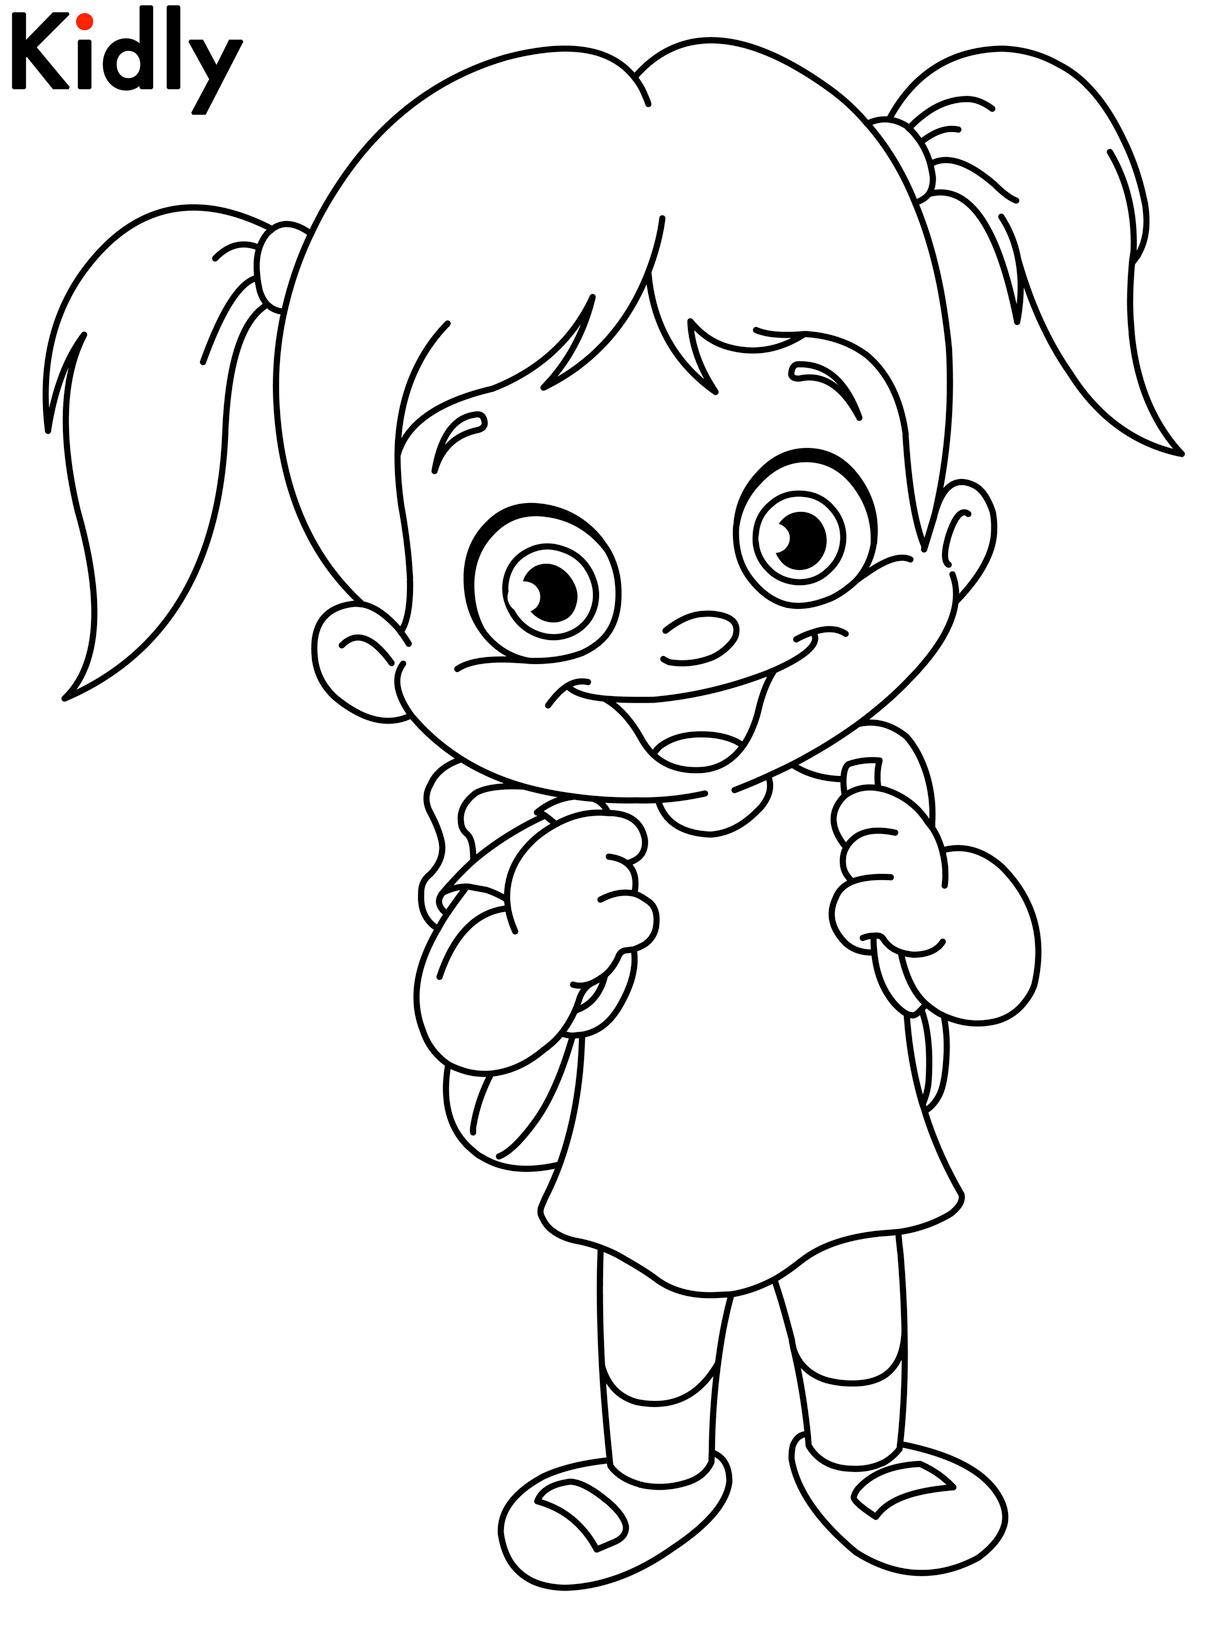 coloring pages for kids girls coloring page the girl draws pages for coloring kids girls